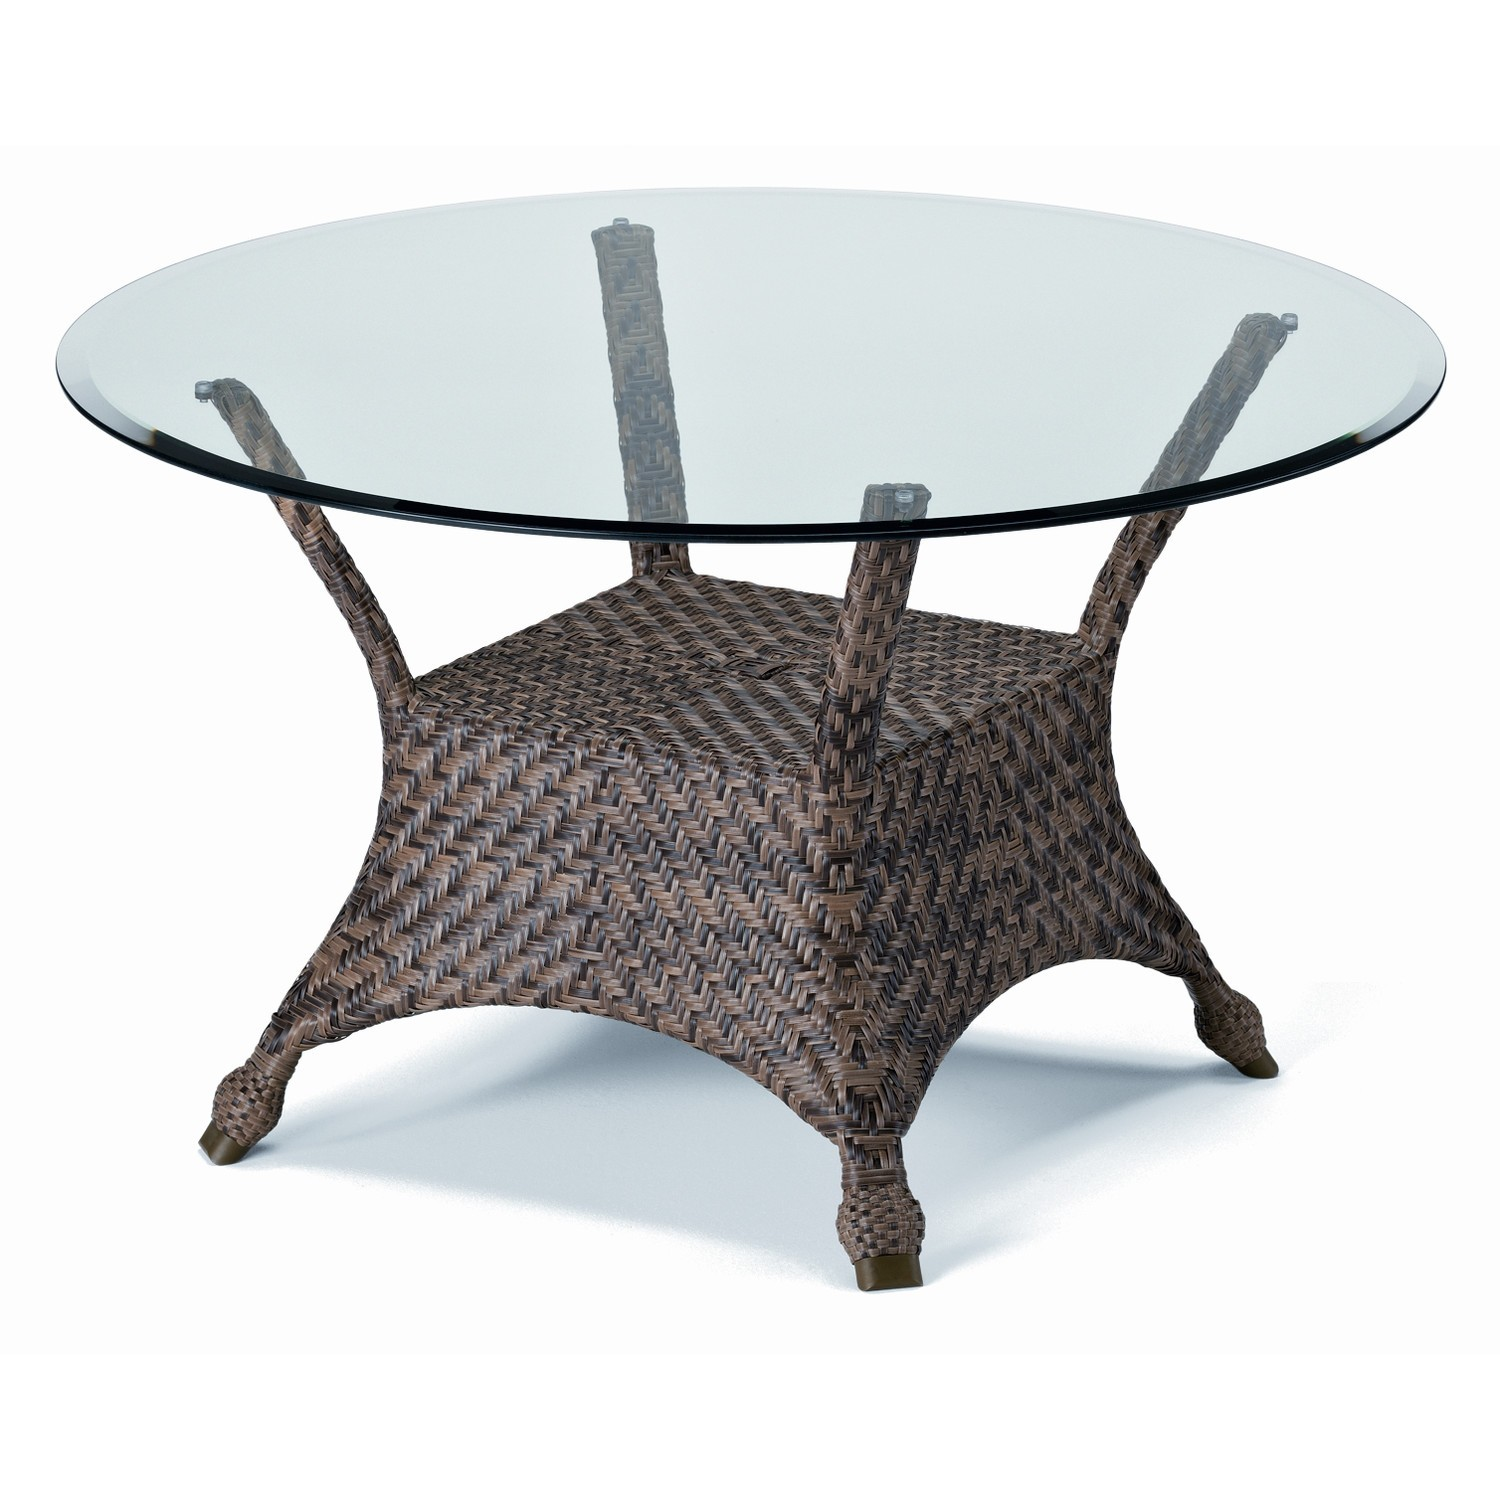 duck rattan sets dinin metal round folding winning wrought chairs iron dining covers set patio for furniture rectangular white cover tripel tables table nesting and licious